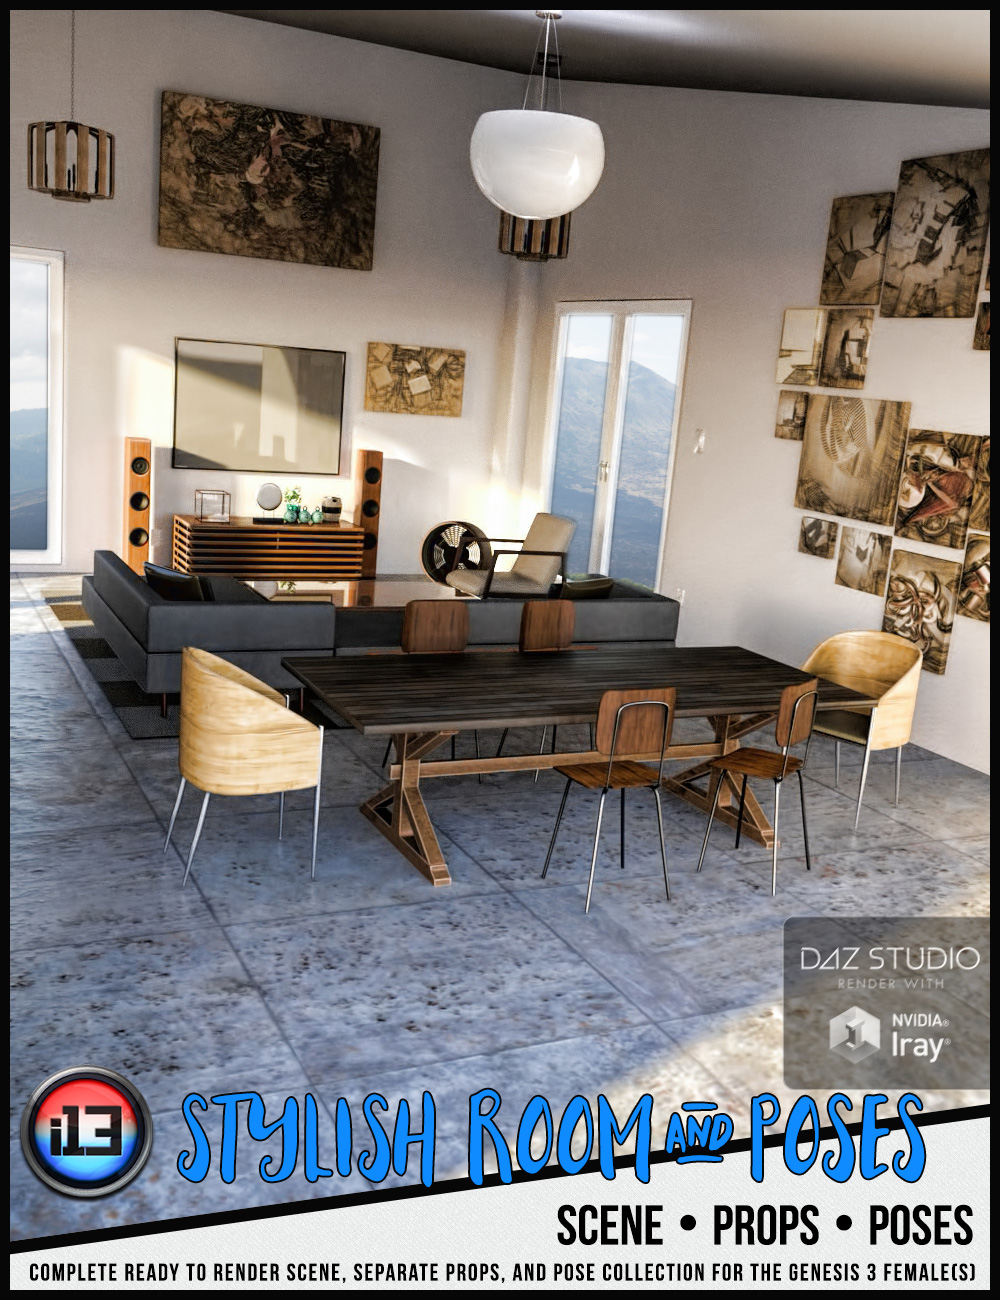 i13 Stylish Room and Poses by: ironman13, 3D Models by Daz 3D